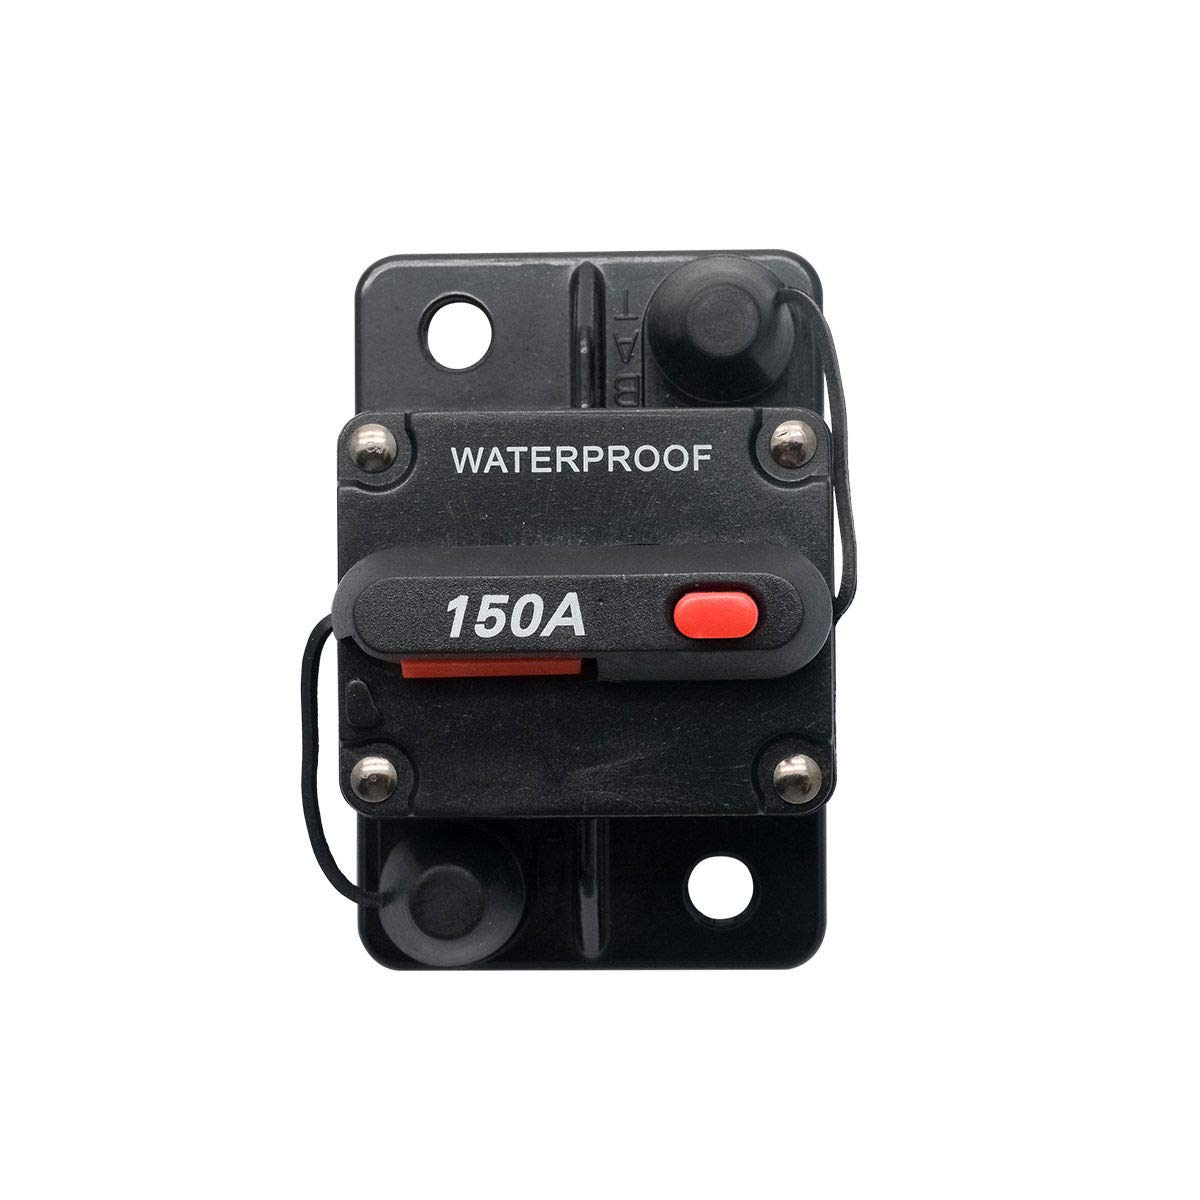 MASO 60 Amp Waterproof Circuit Breaker with Manual Reset Suitable for Motor Auto Car Marine Boat Bike Stereo Audio 12V-24V DC